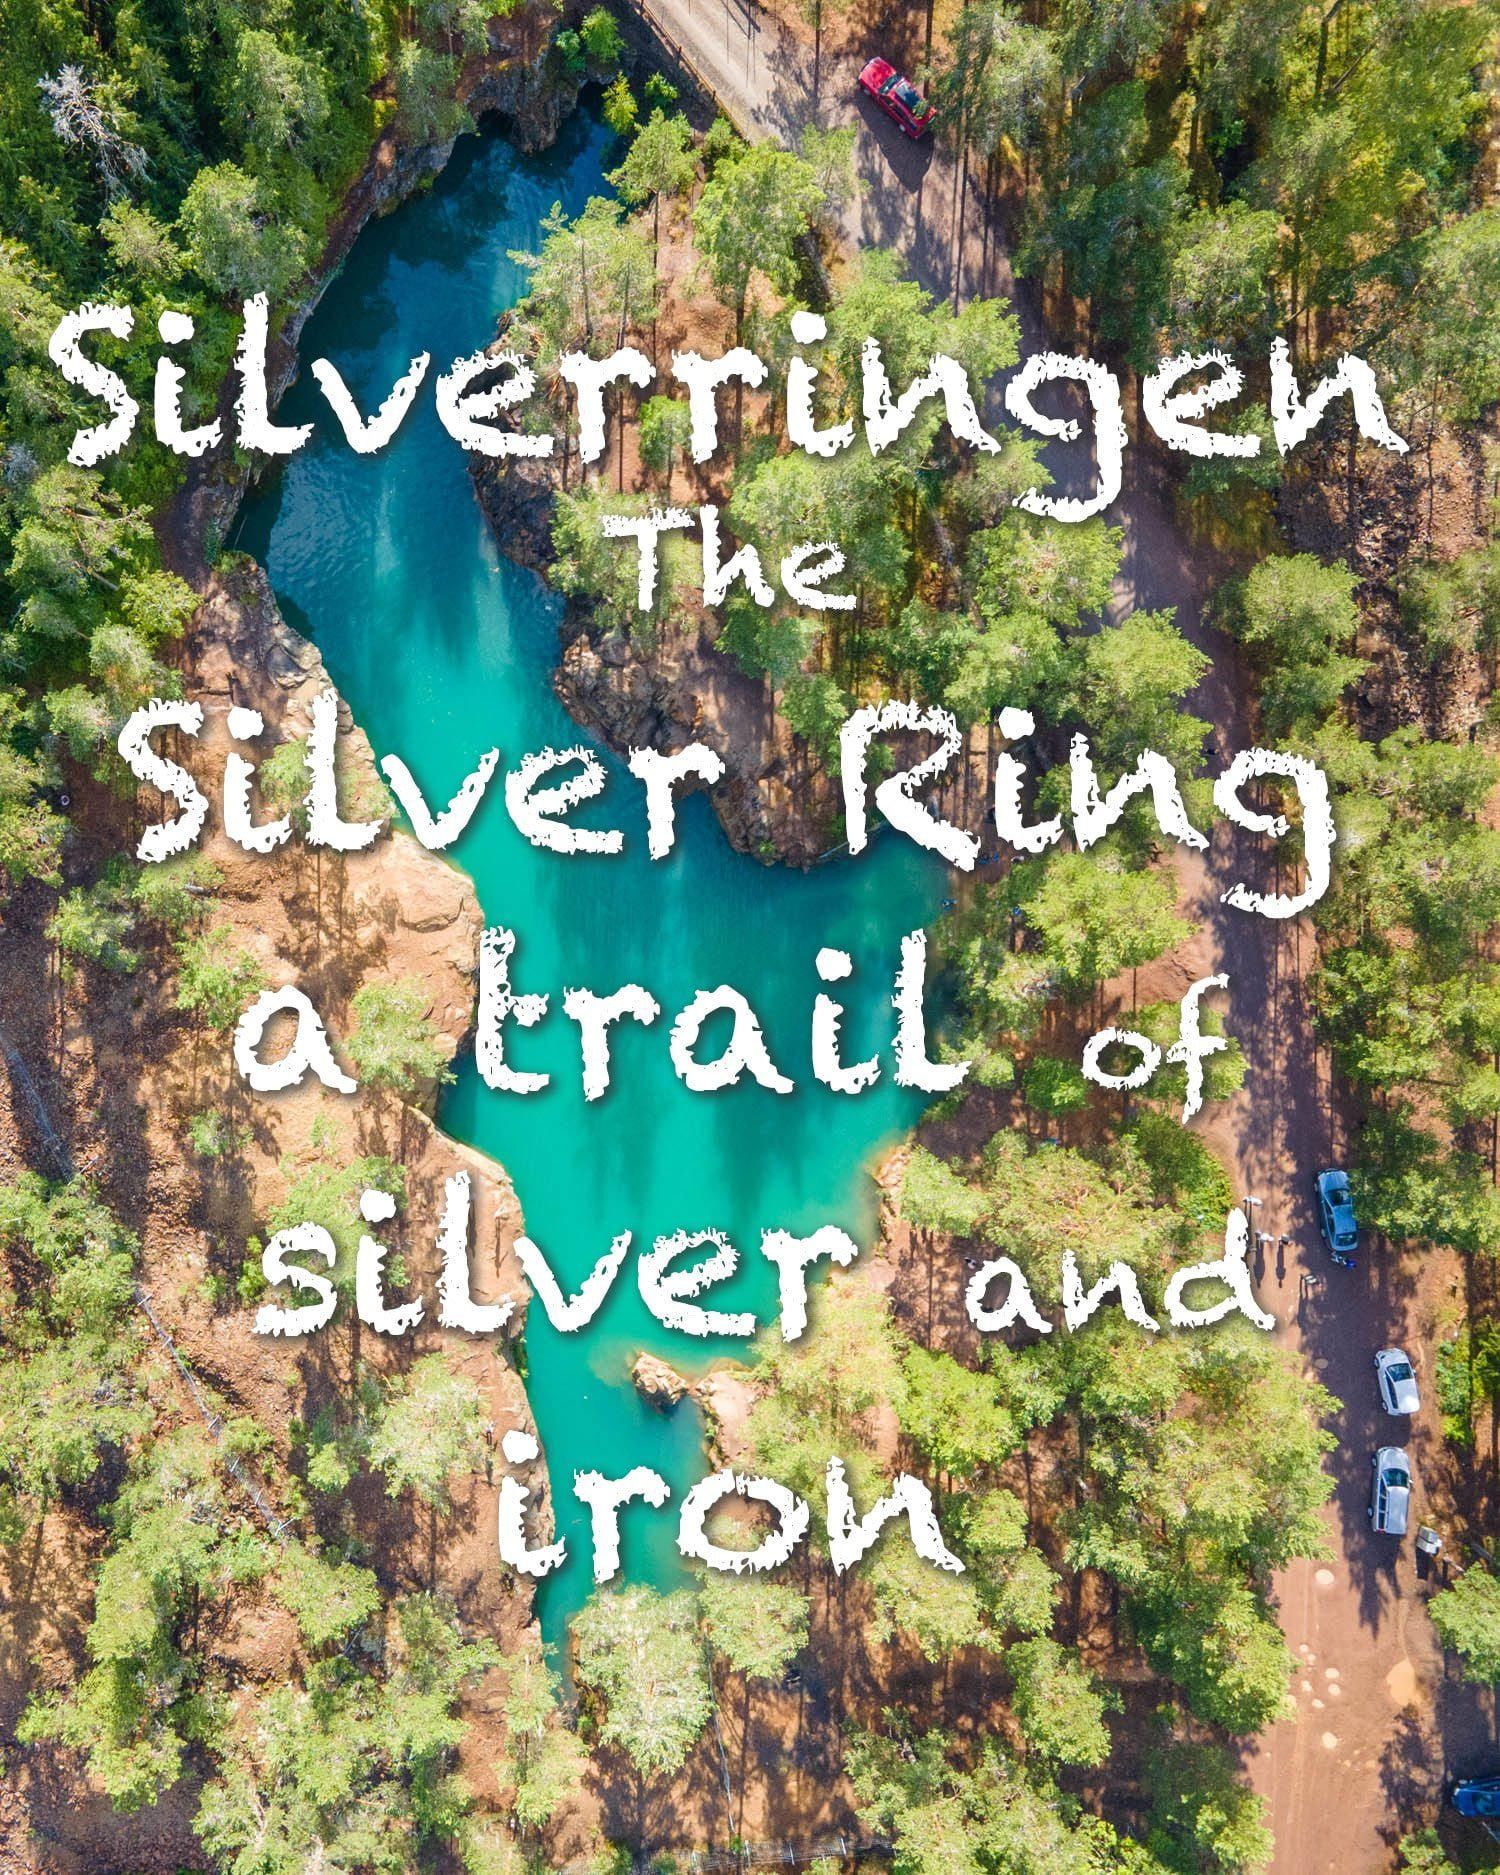 Silverringen - The Silver Ring - a trail of silver and iron